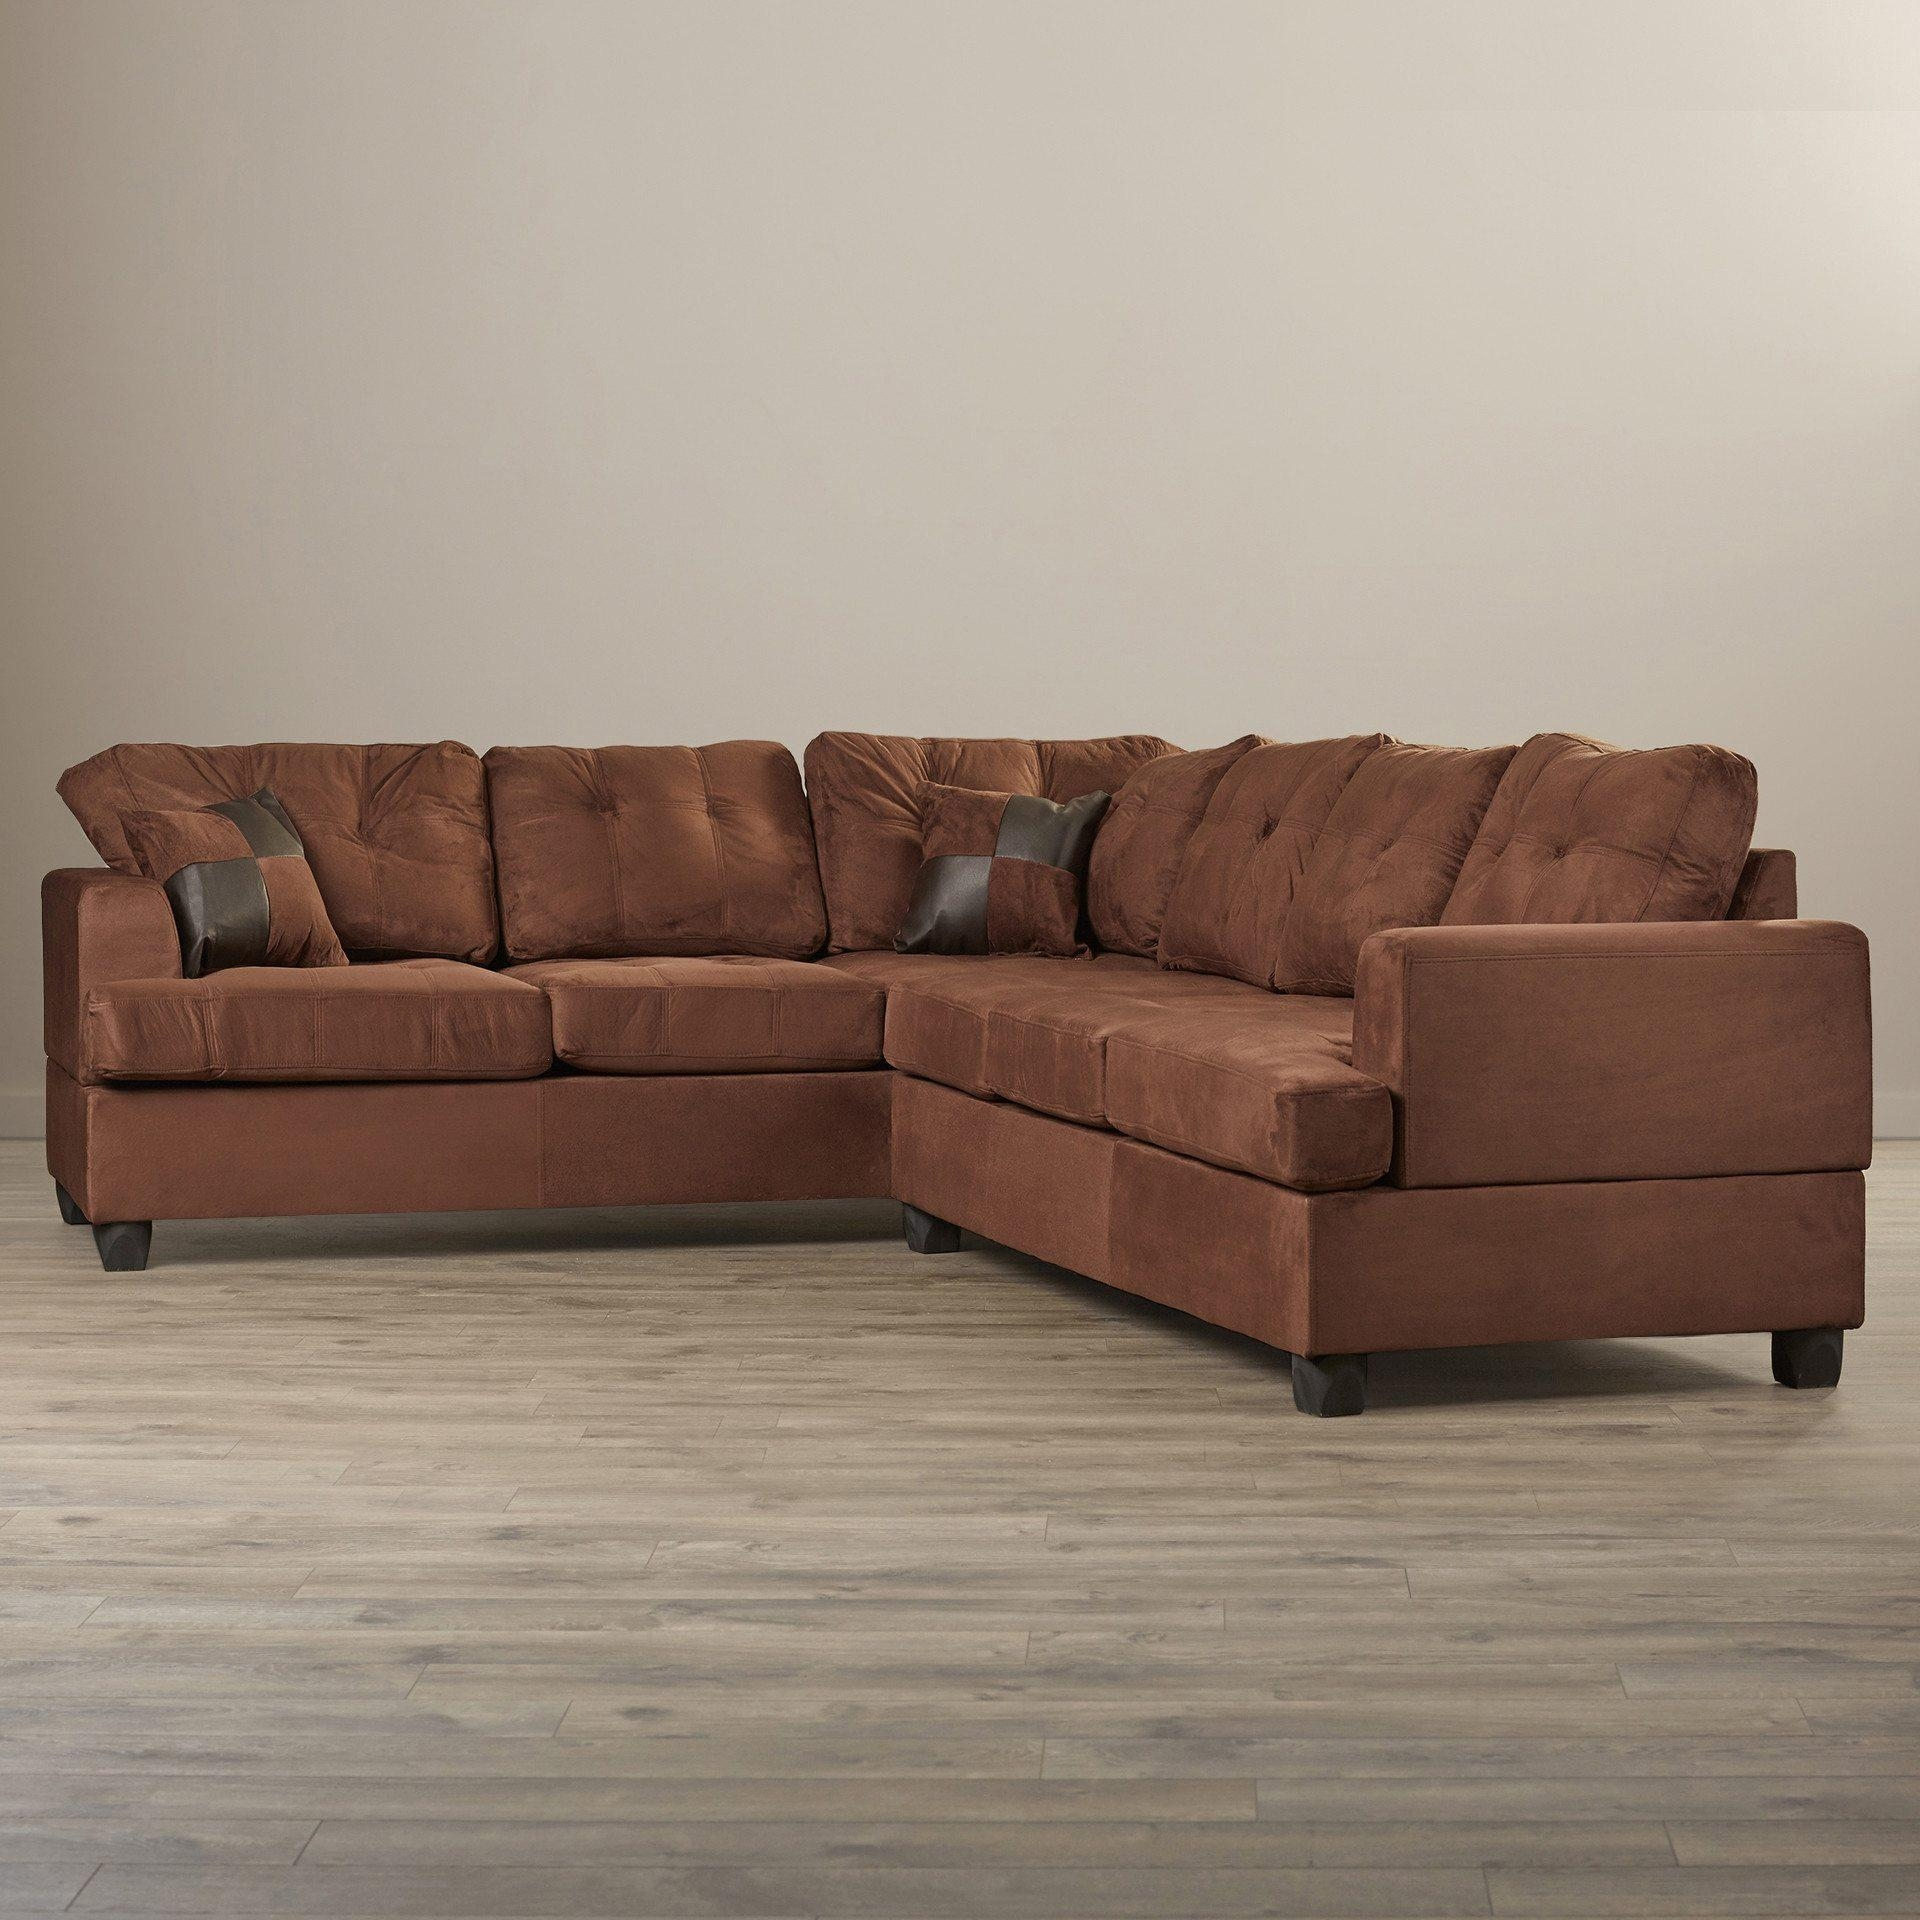 Furniture & Sofa: Perfect Small Spaces Configurable Sectional Sofa Pertaining To Mini Sectionals (Image 6 of 20)